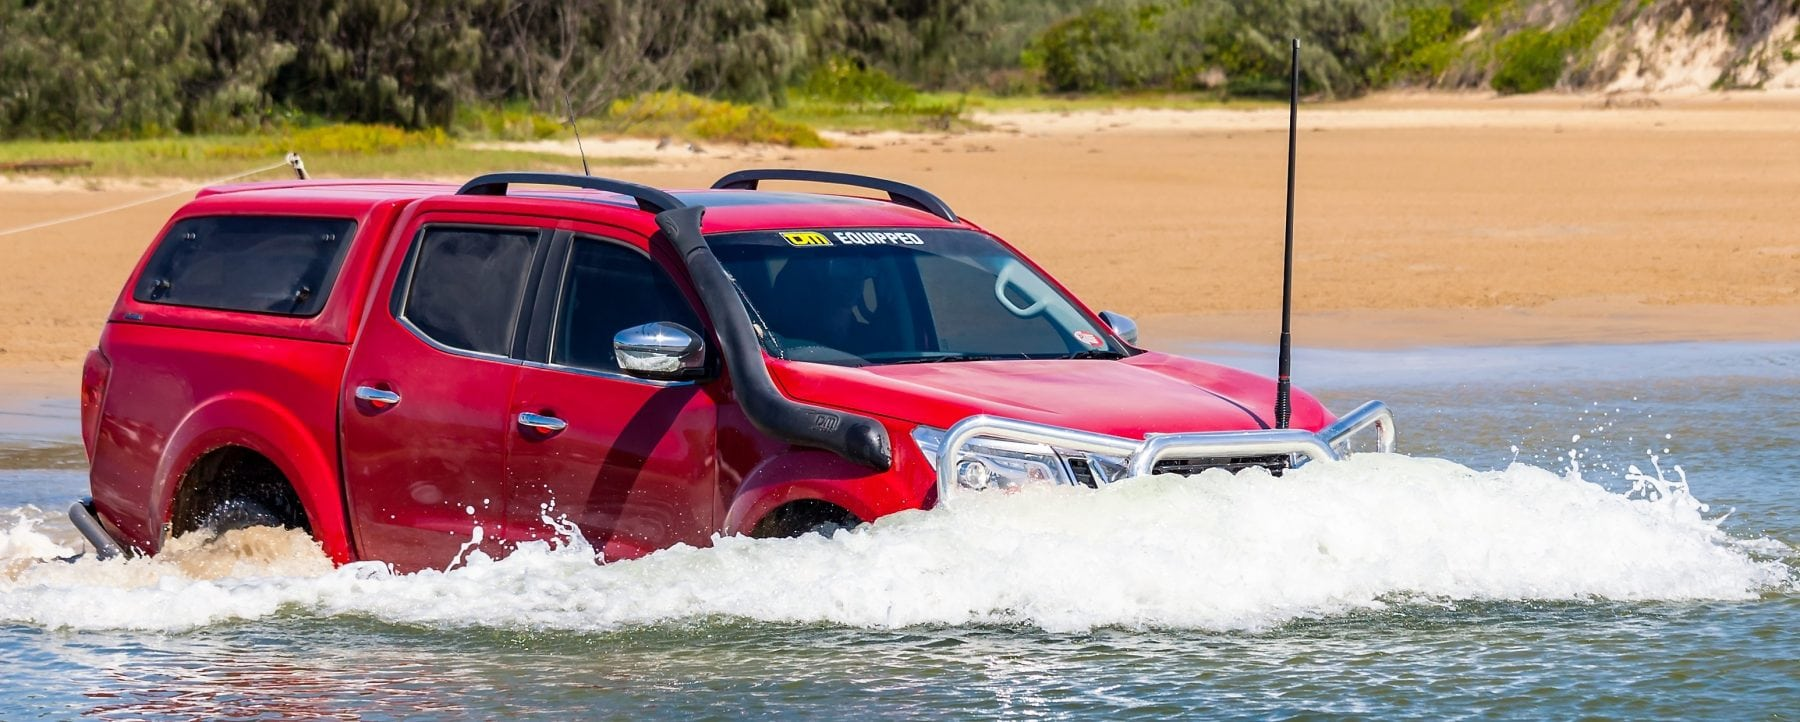 Buy Accessories for 4wd with Peace of Mind